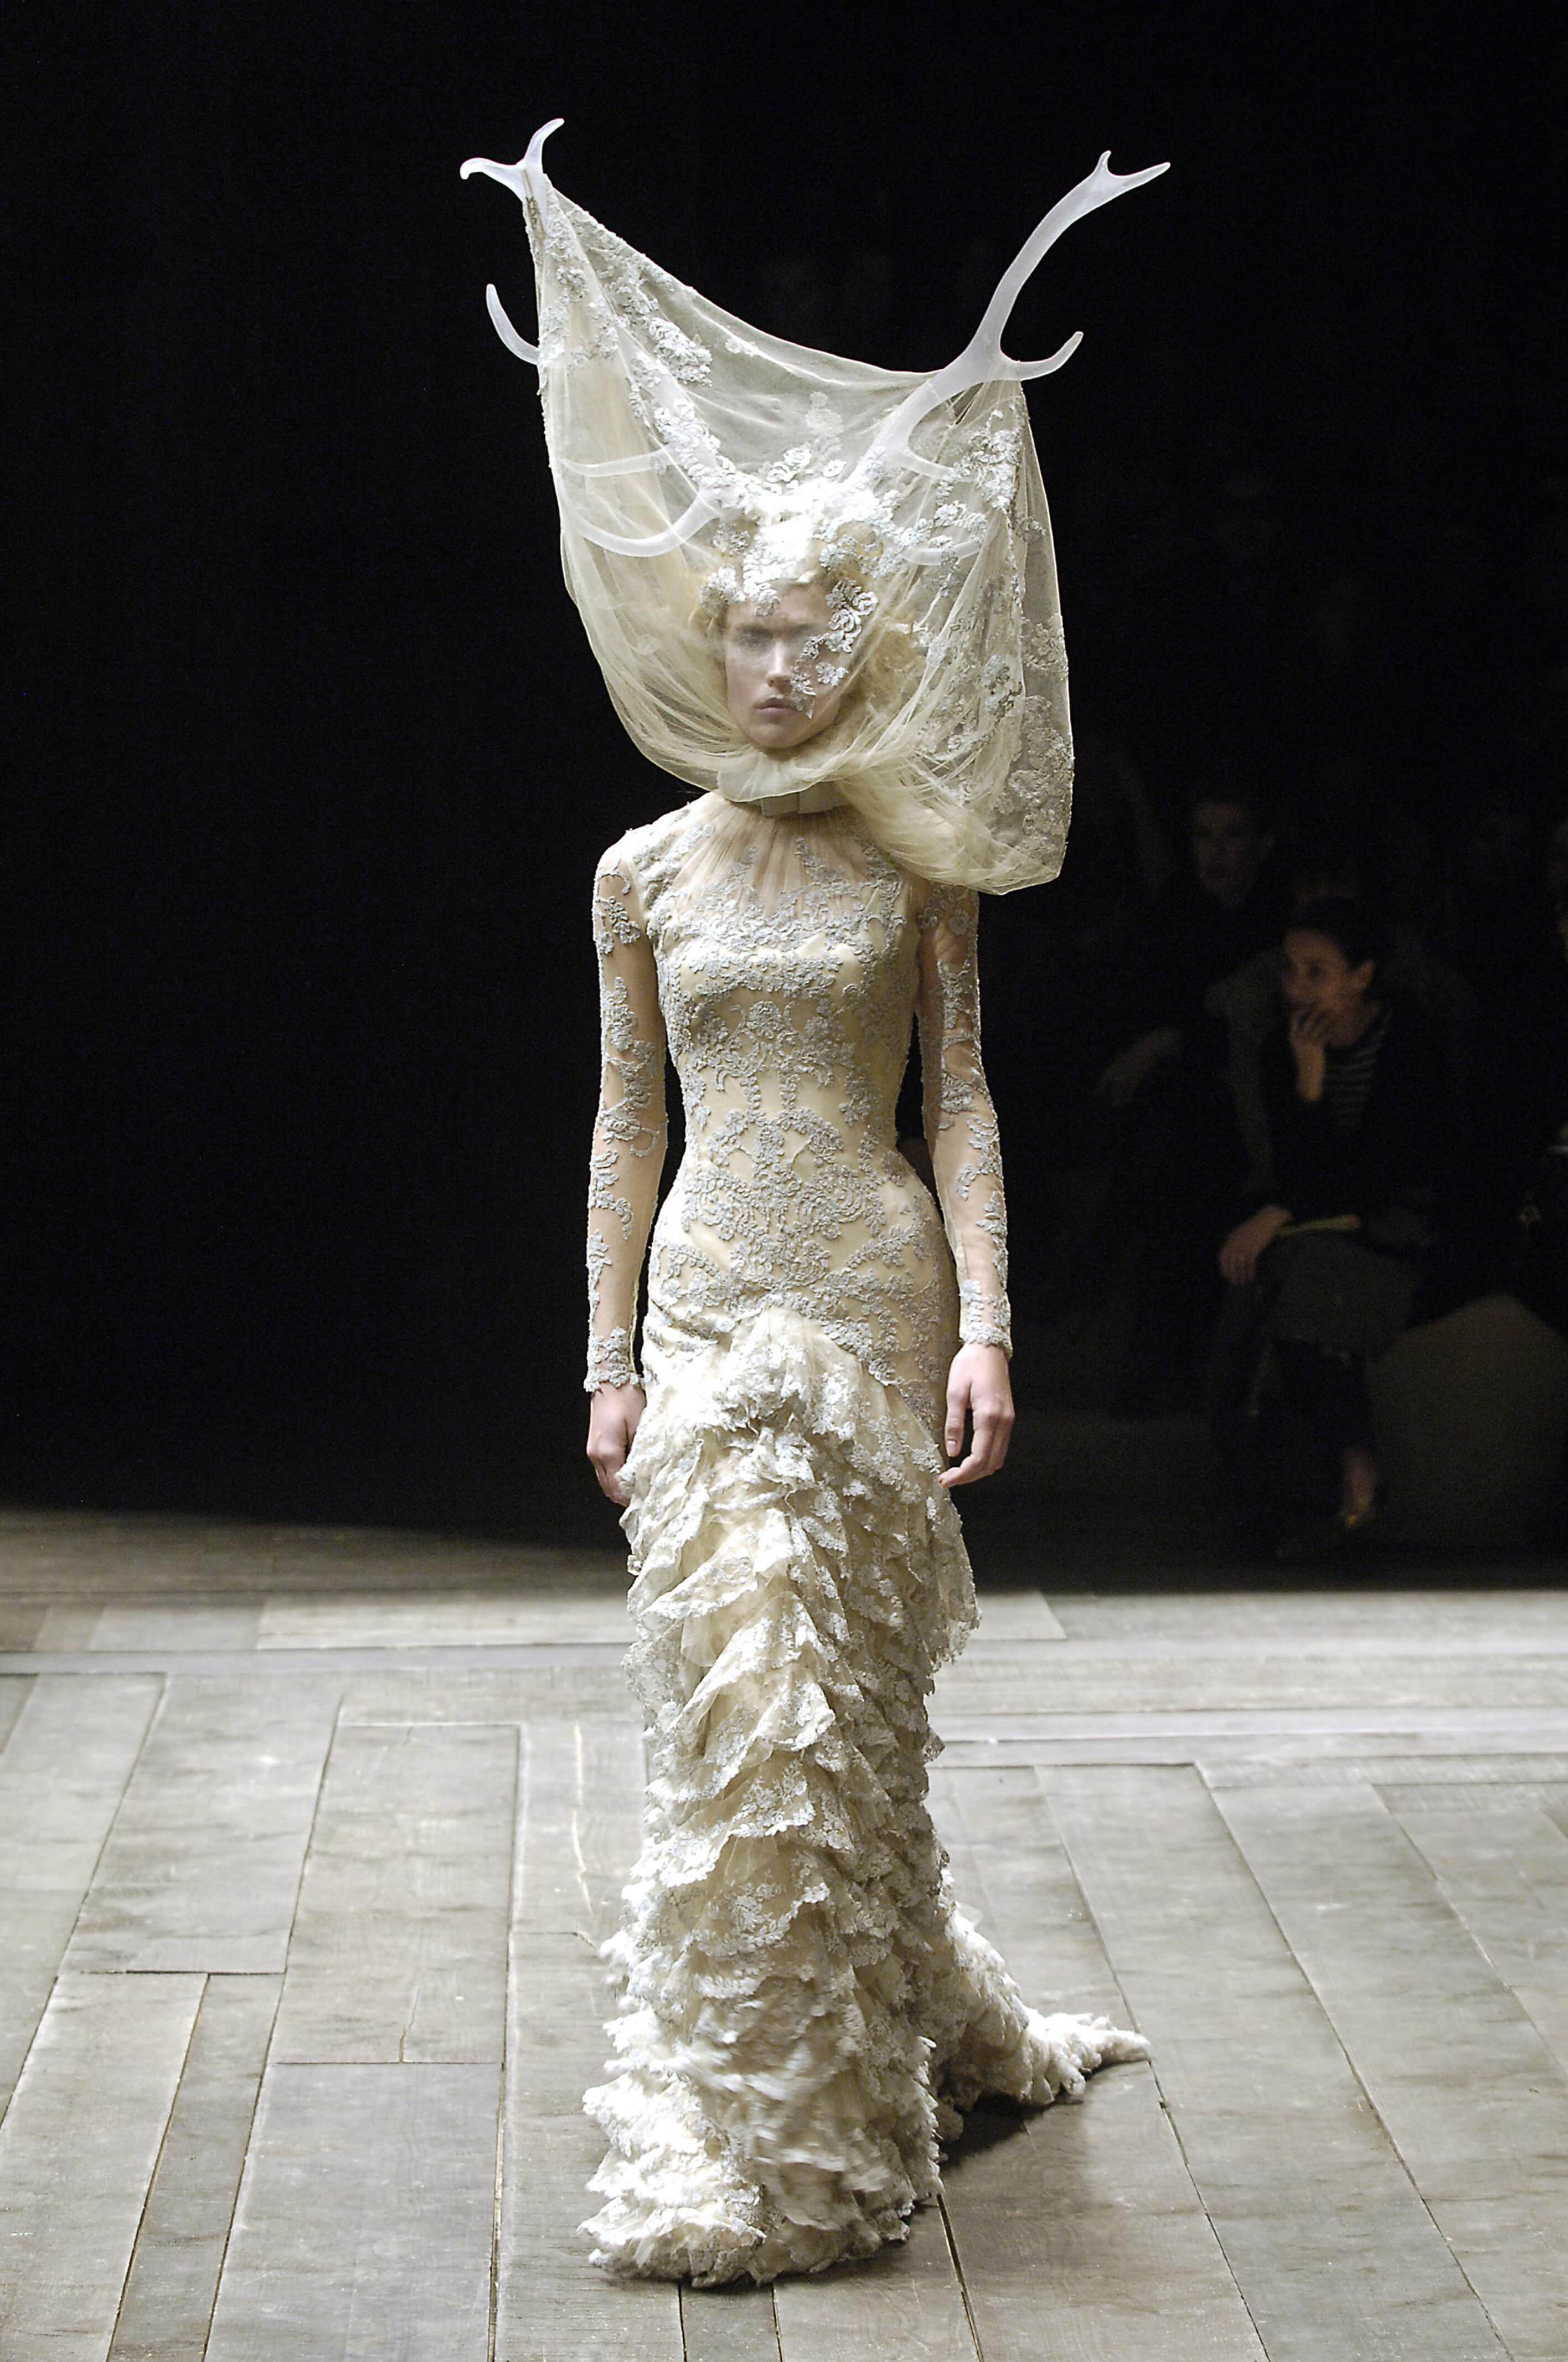 5._Tulle_and_lace_dress_with_veil_and_antlers_Widows_of_Culloden_AW_2006-07._Model_Raquel_Zimmermann_Viva_London._Image_firstVIEW